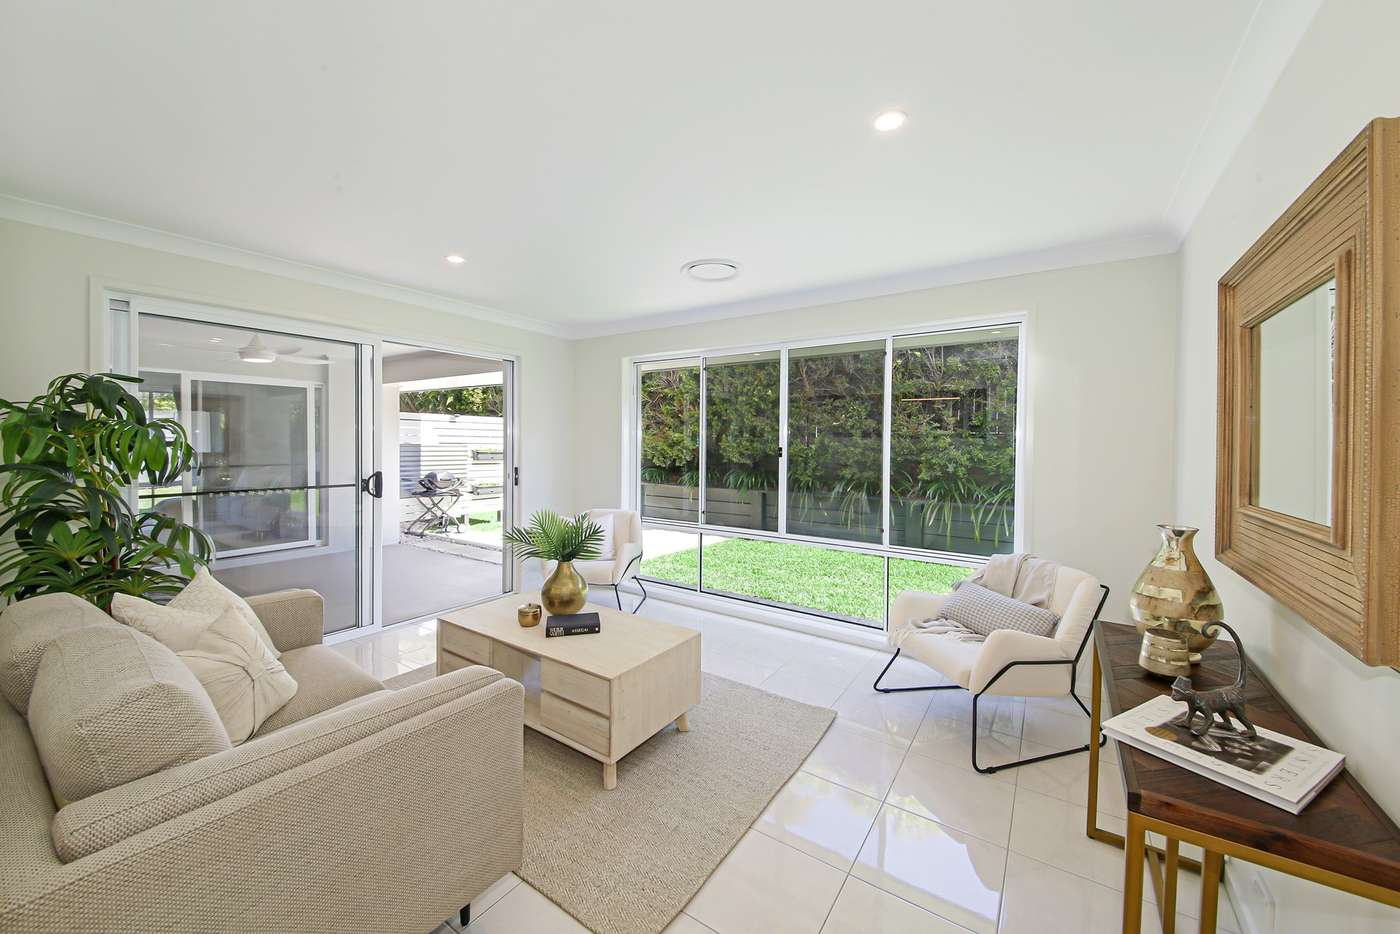 Sixth view of Homely house listing, 32 Maidstone Crescent, Peregian Springs QLD 4573